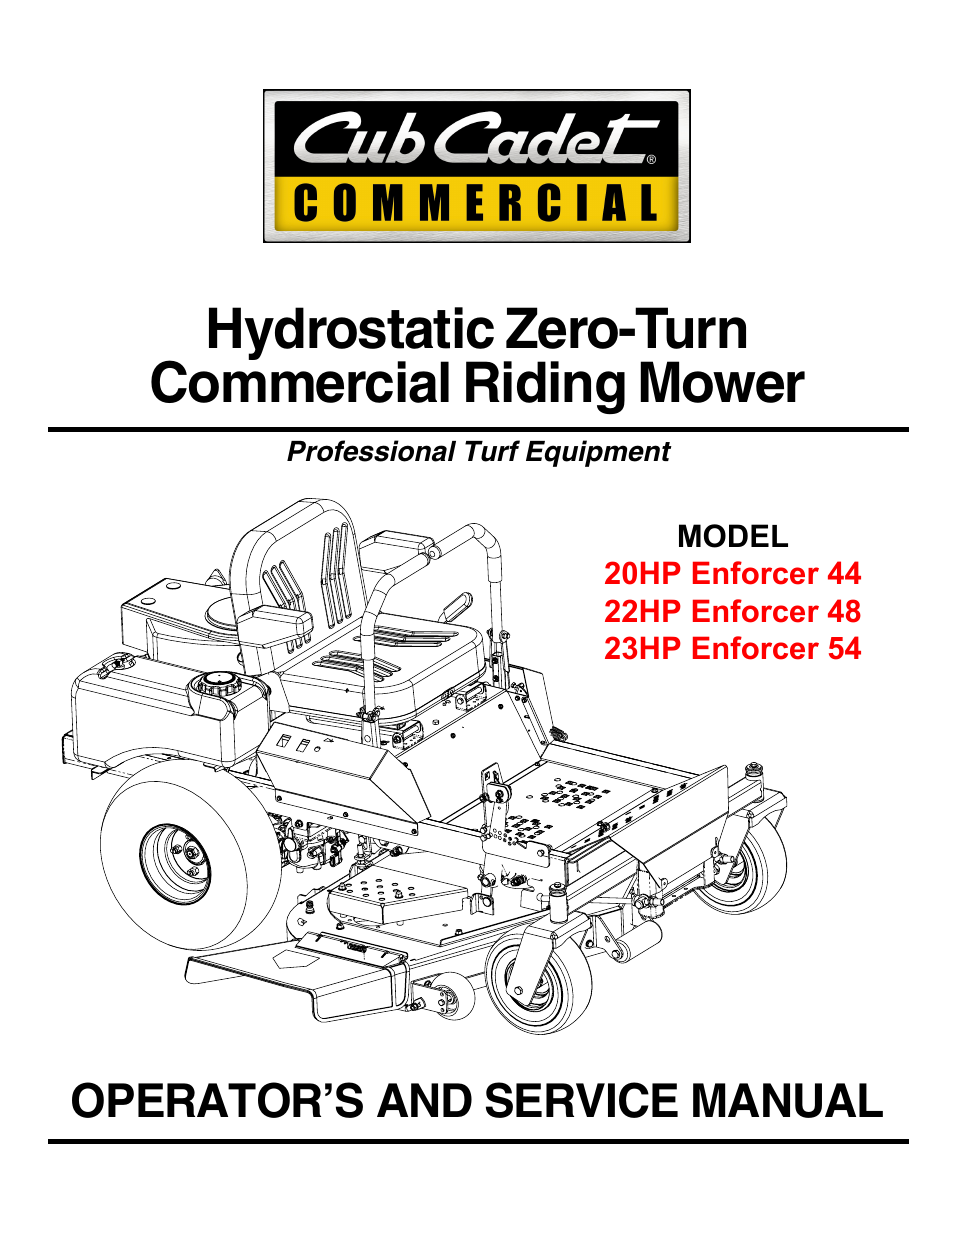 cub cadet 22hp enforcer 48 en user manual